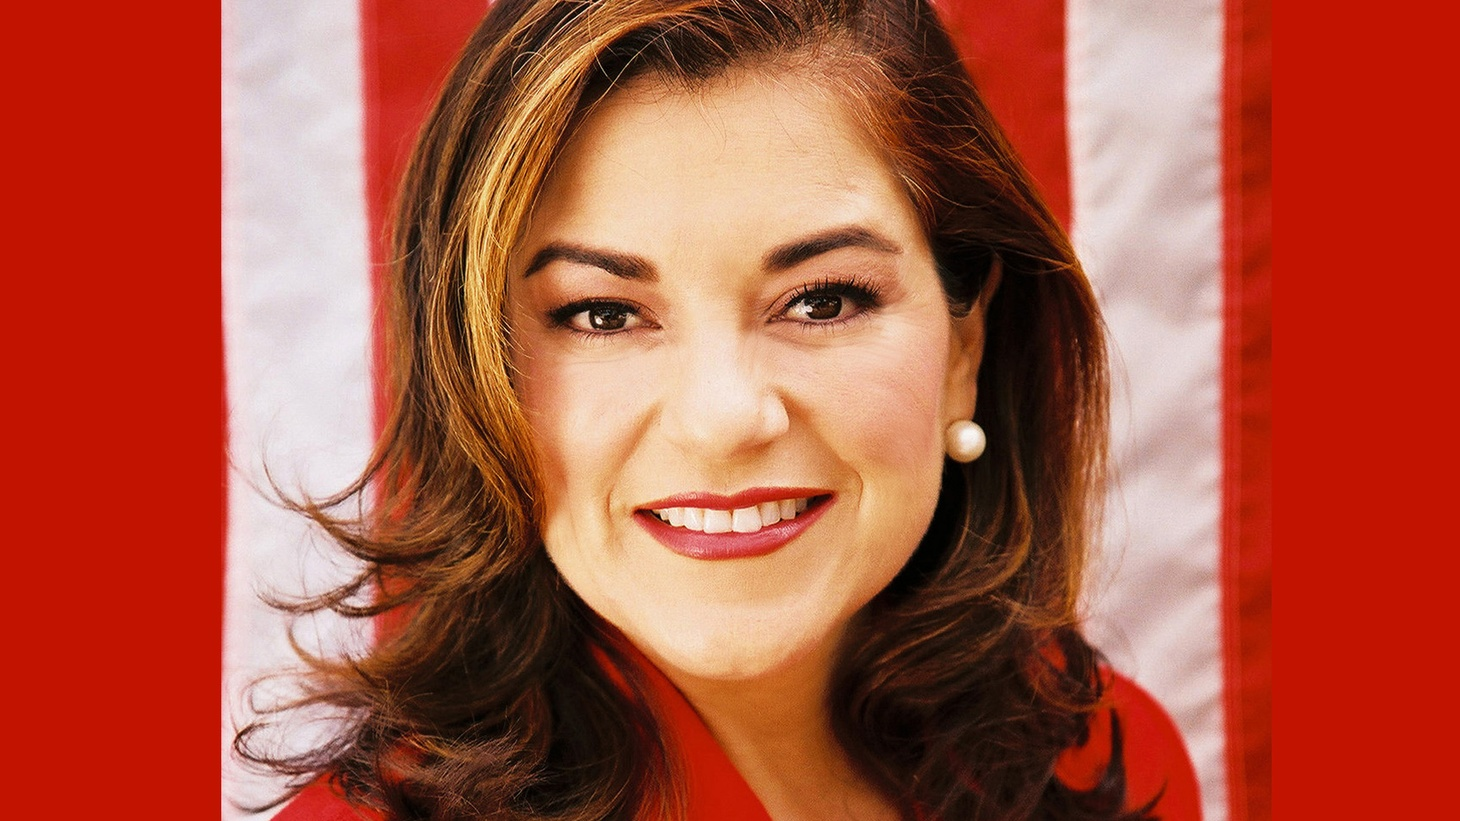 Madeleine interviews U.S. Rep. Loretta Sanchez of Orange County about her controversial comments on Muslims, her campaign to replace Sen. Barbara Boxer and more.